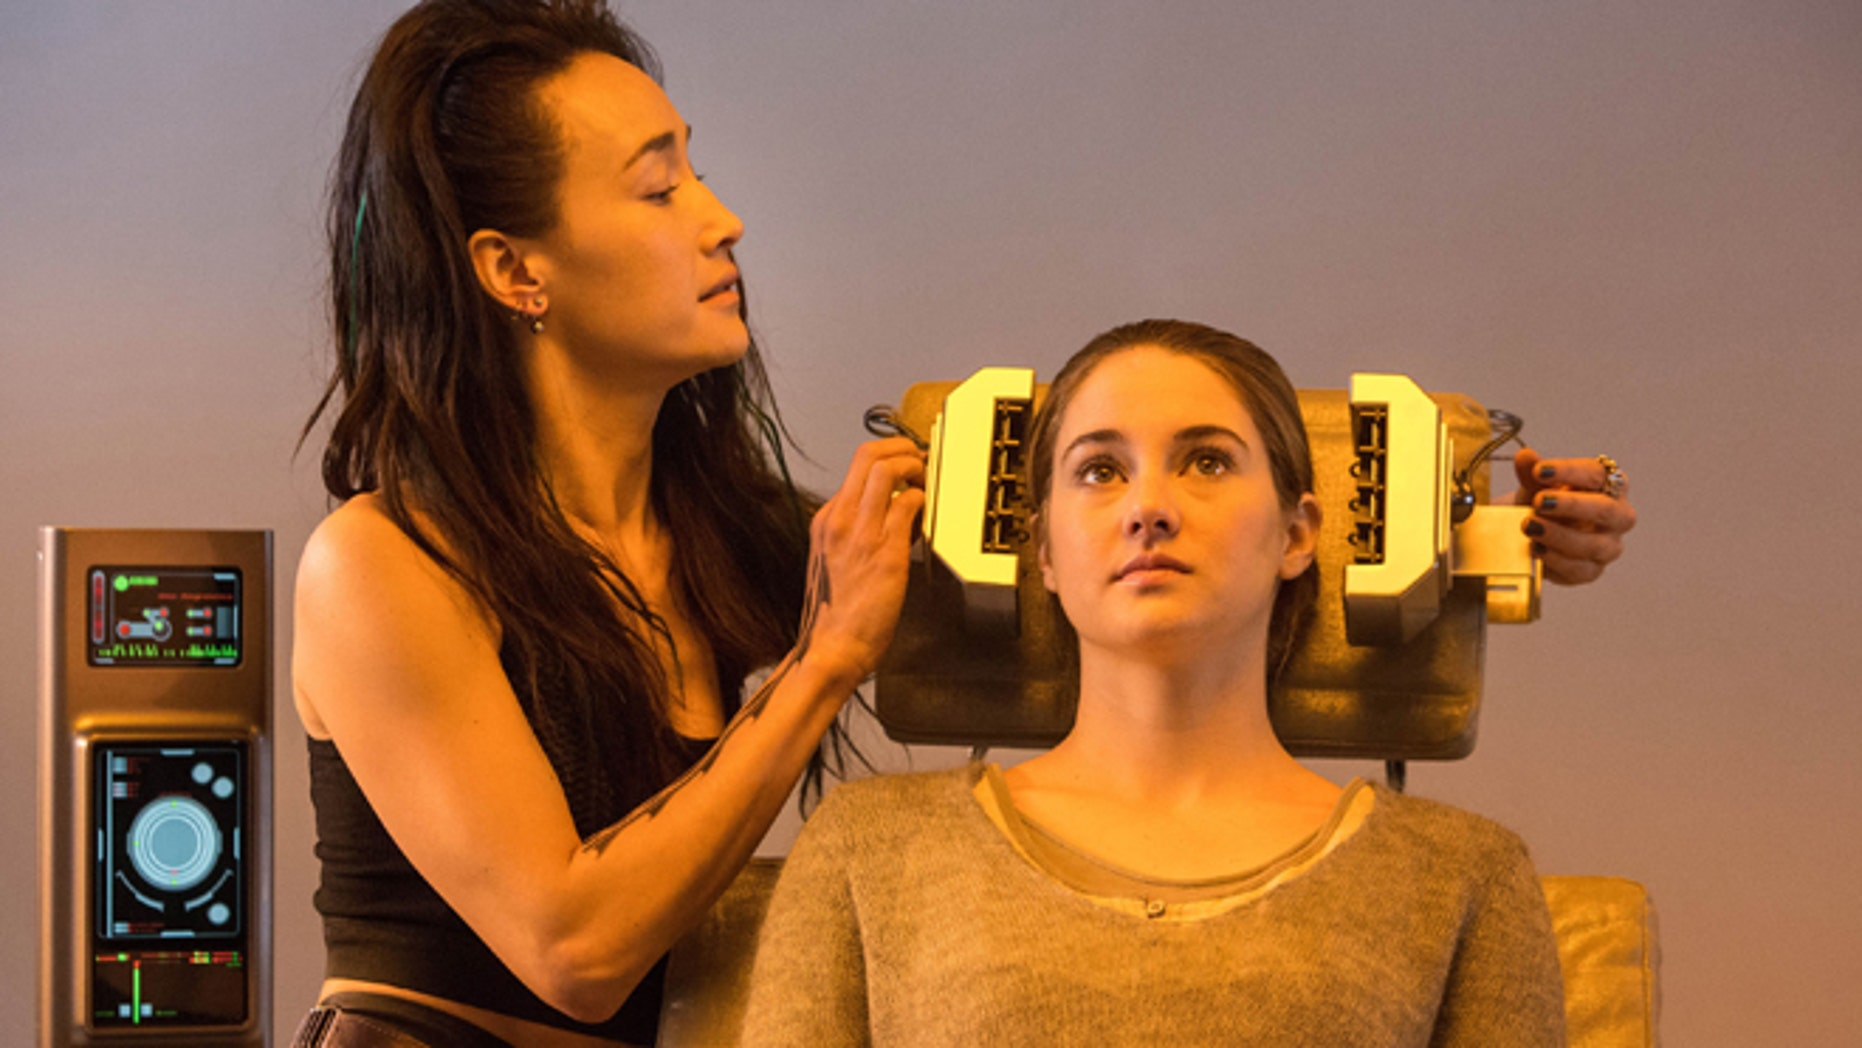 """This photo released by Summit Entertainment, LLC shows Maggie Q, left, as Tori and Shailene Woodley as Beatrice """"Tris"""" Prior, in the film, """"Divergent."""" The film releases Friday, March 21, 2014. (AP Photo/Summit Entertainment, Jaap Buitendijk)"""